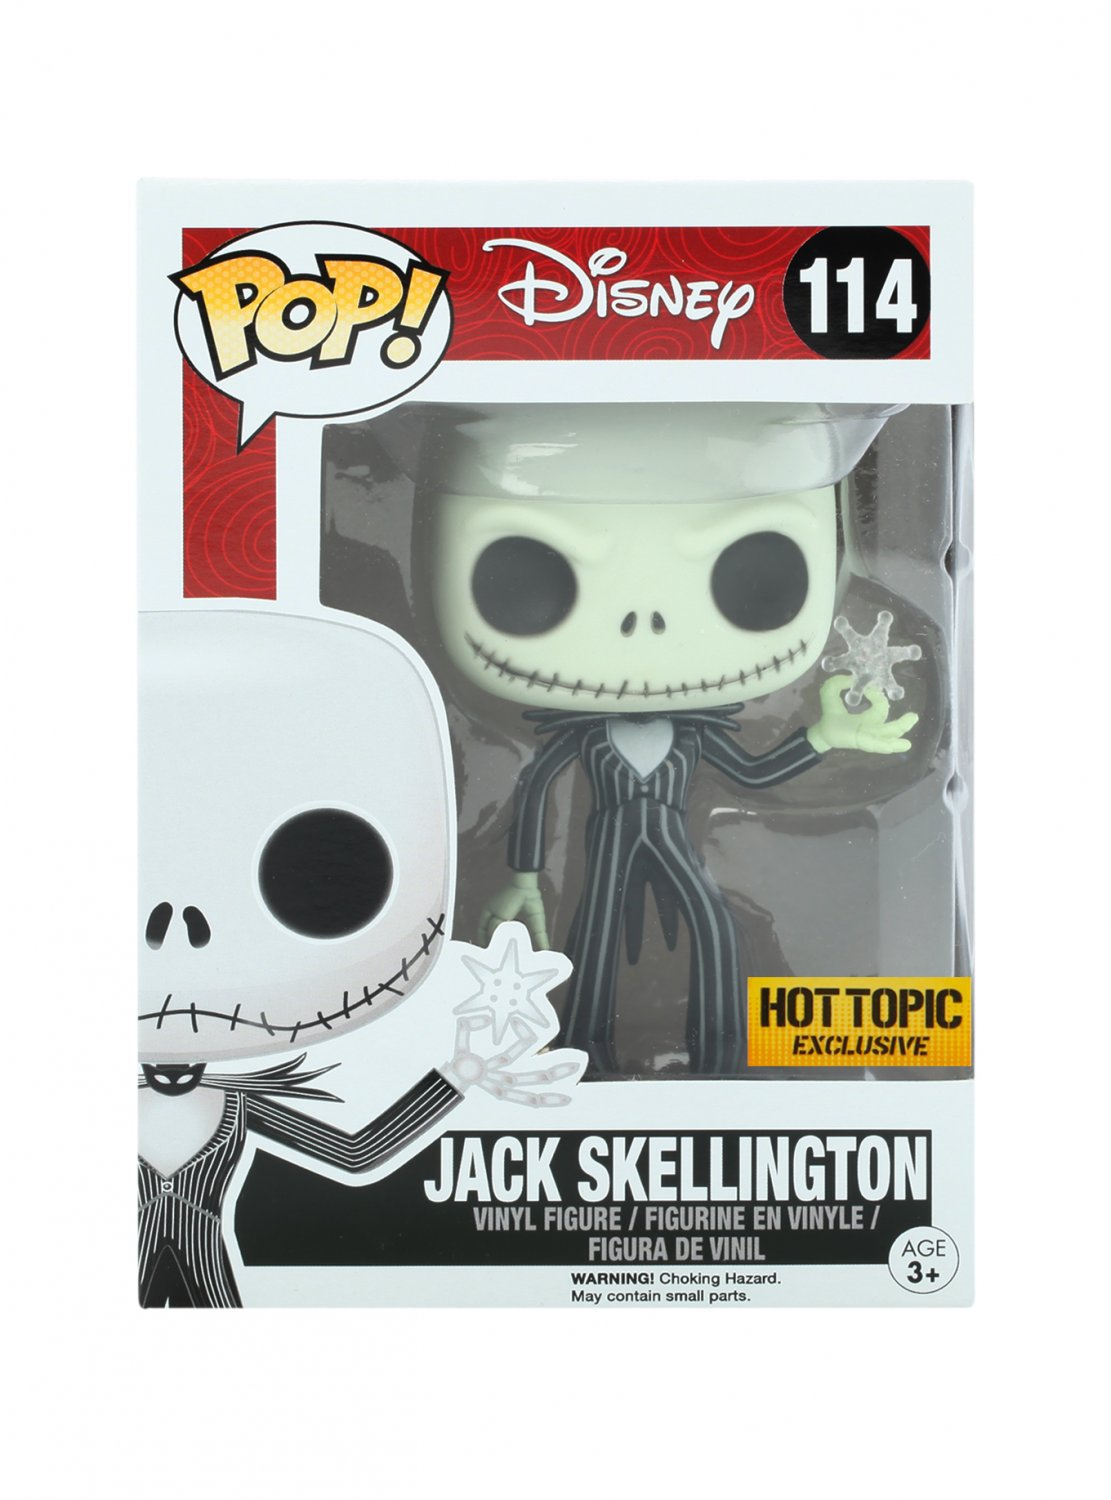 ba1c17b773 Set of 2 Disney Nightmare Before Christmas Jack Skellington   Sally Figures Hot  Topic